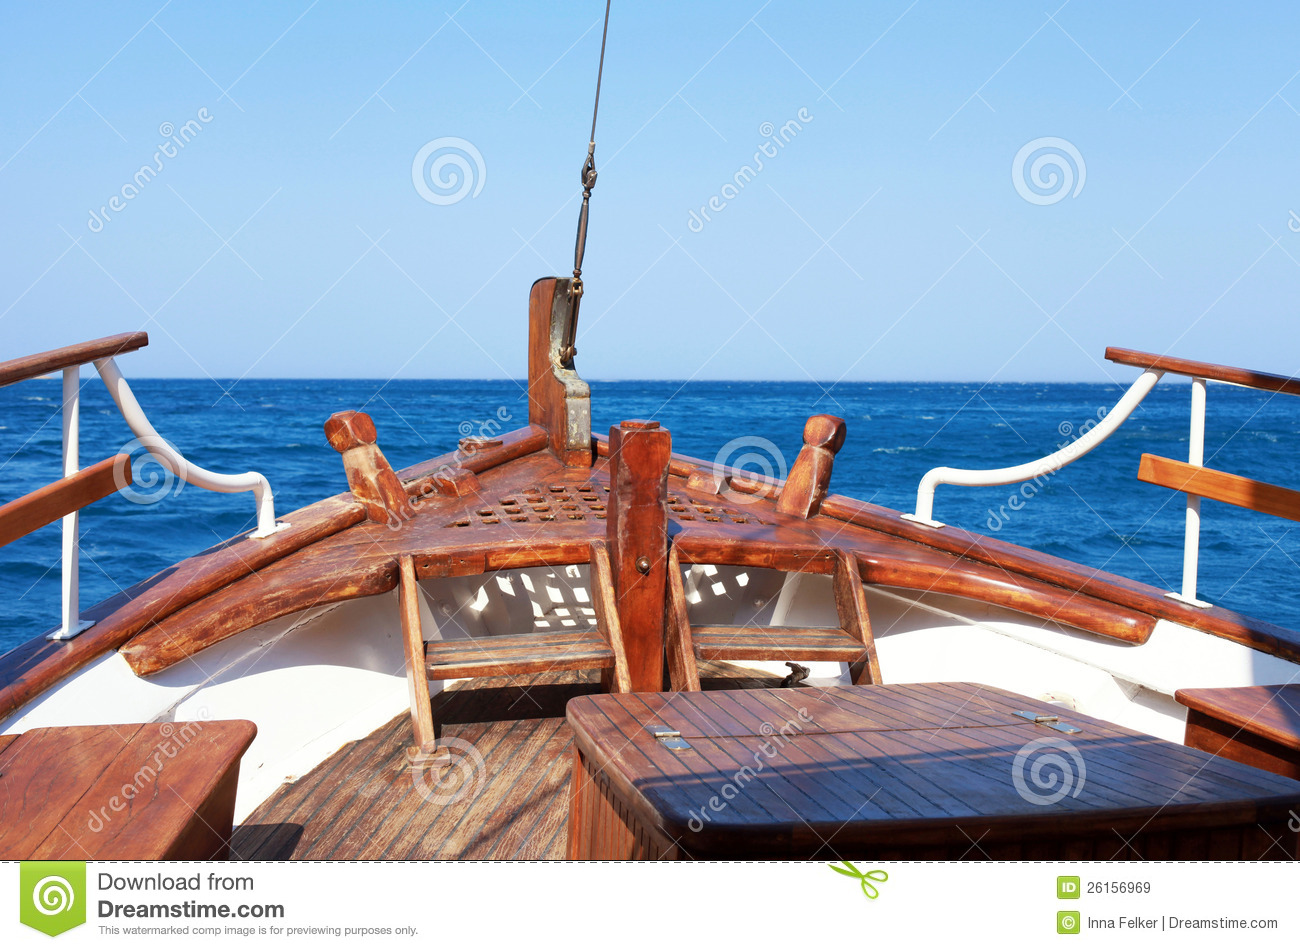 The Bow Of Old Wood Ship Royalty Free Stock Images - Image: 26156969